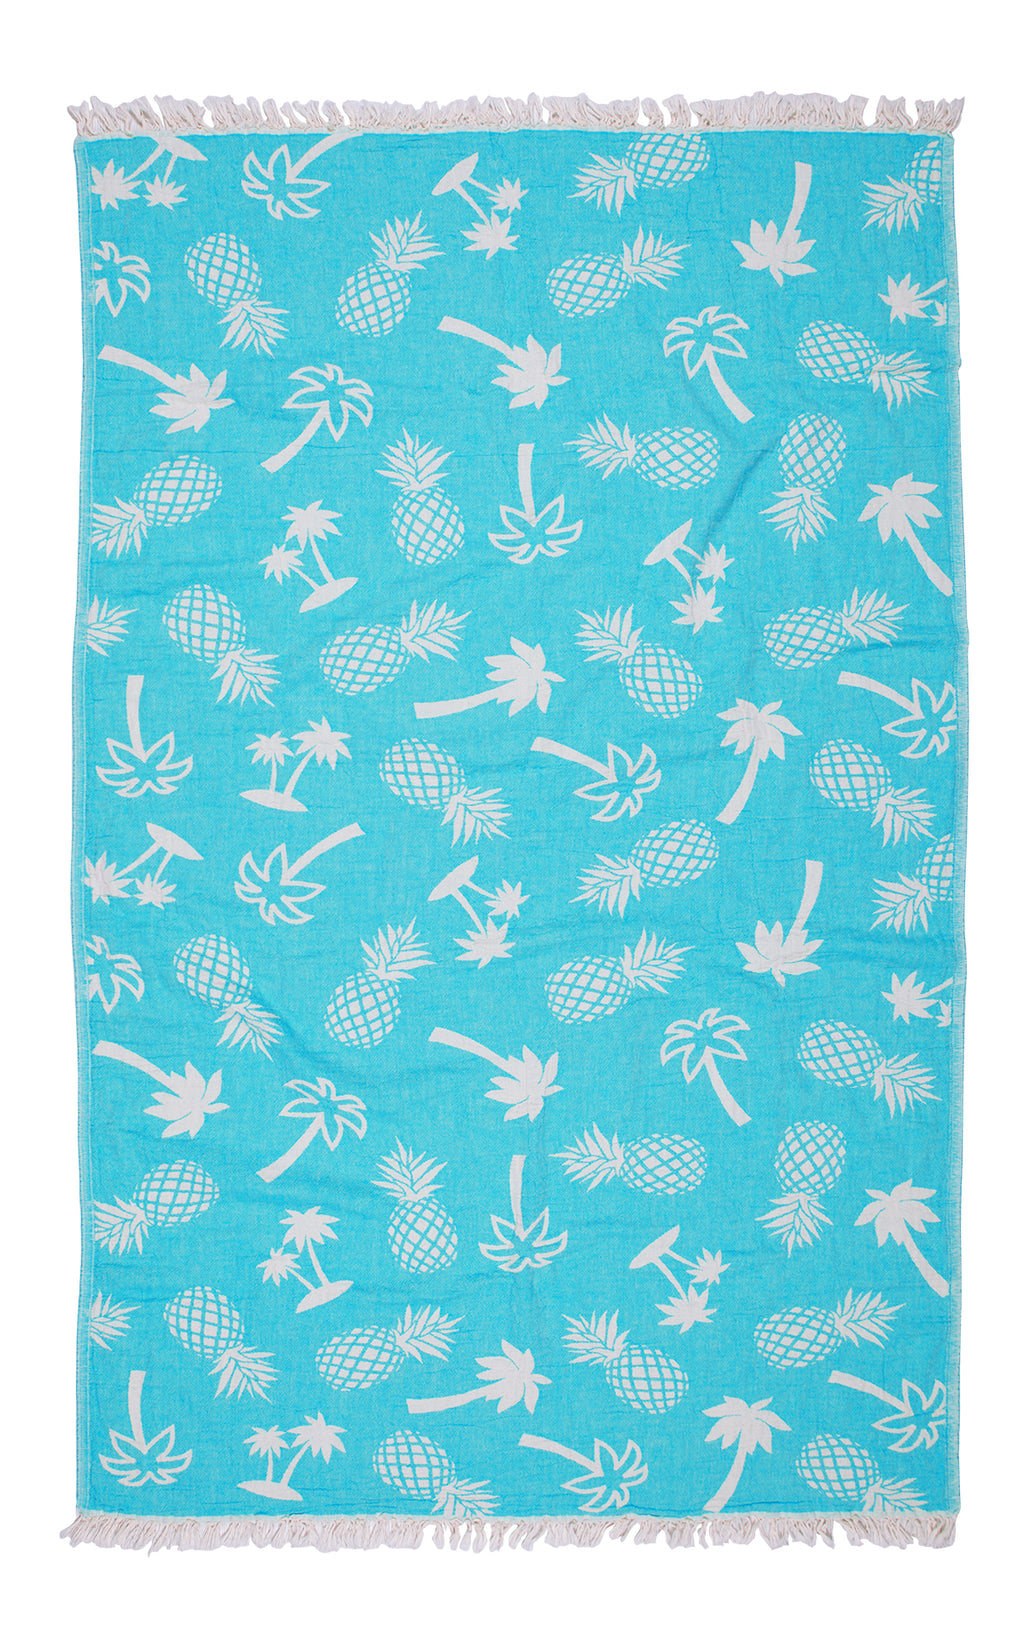 Road Trip Palm Beach Towel - Turquoise